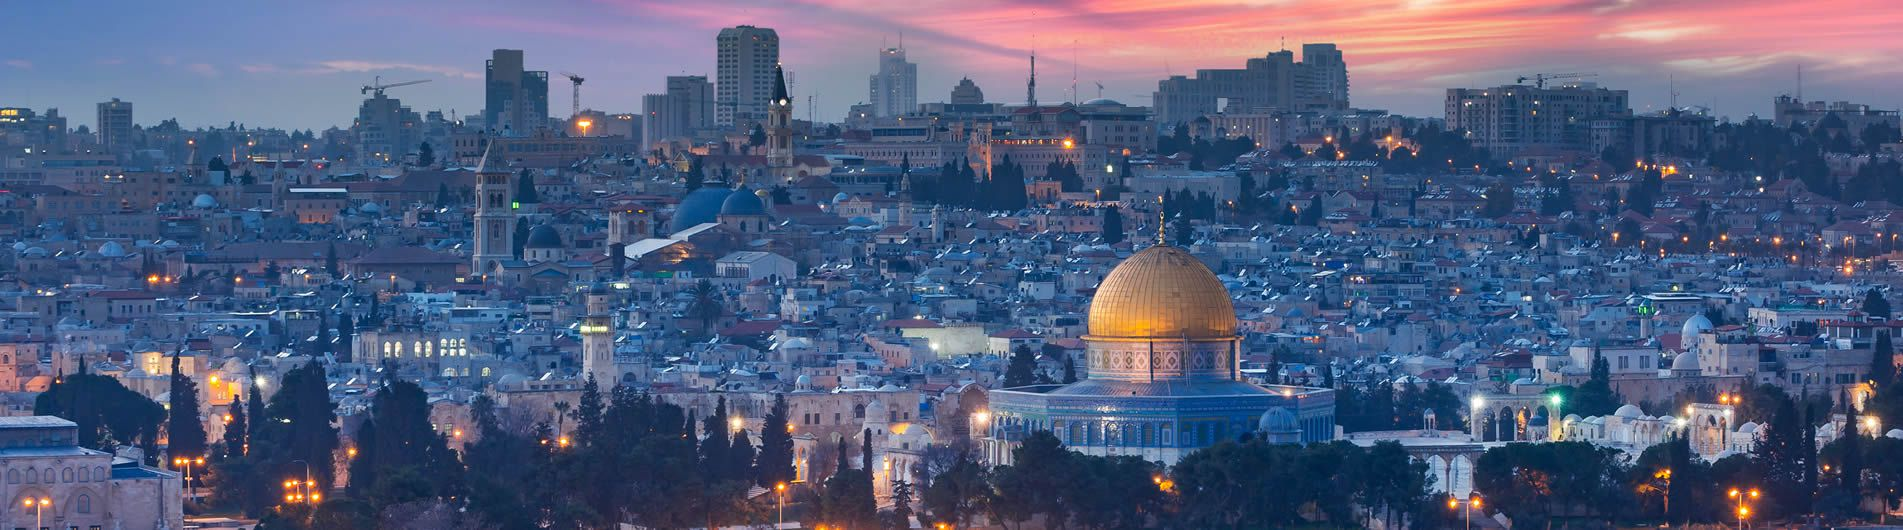 The Holyland, Jerusalem